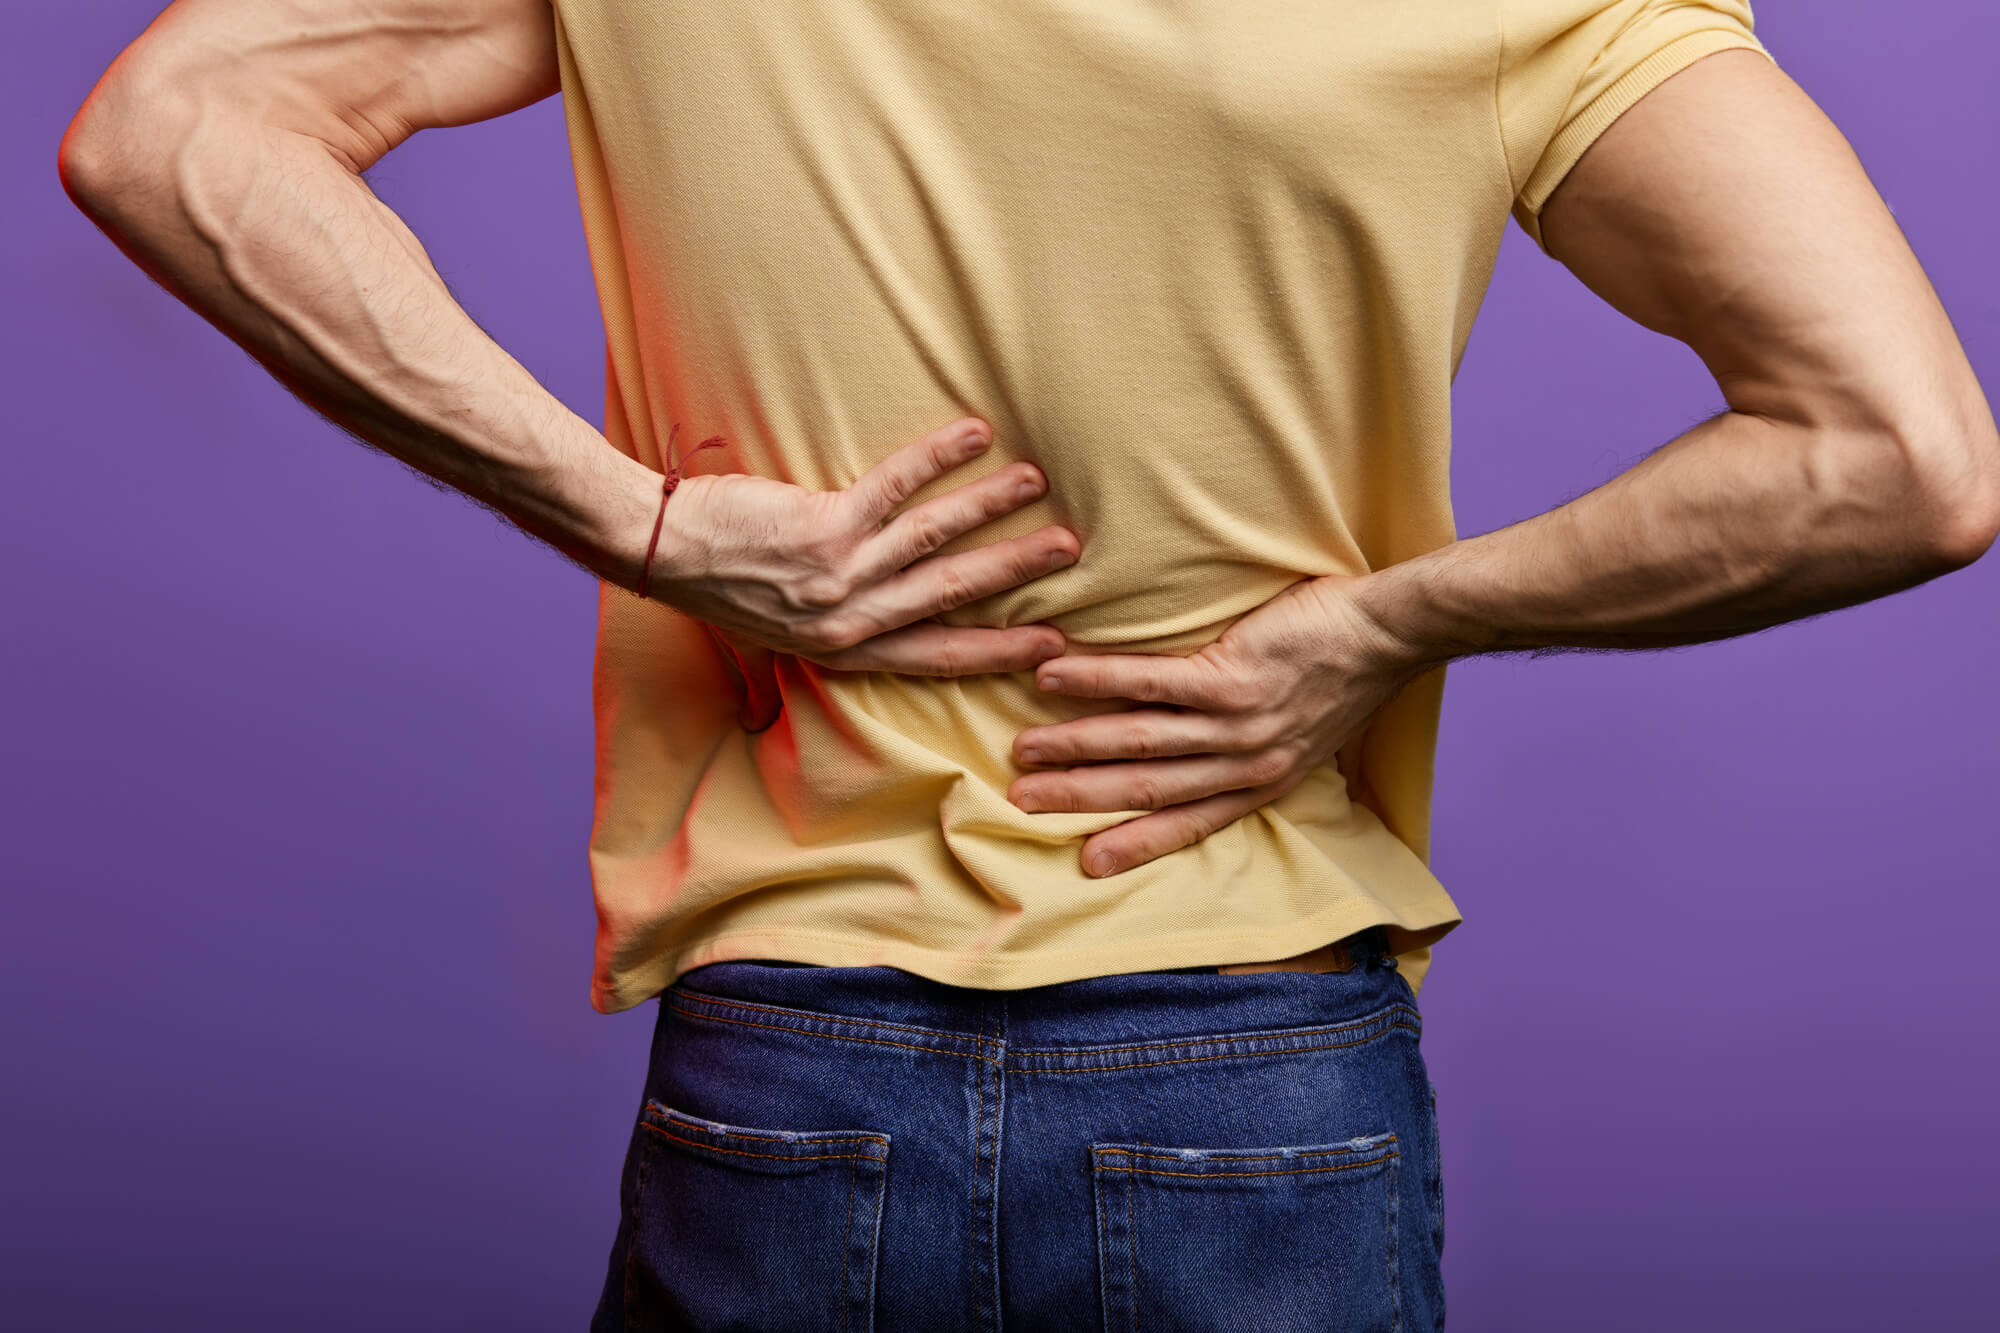 Man holding painful back